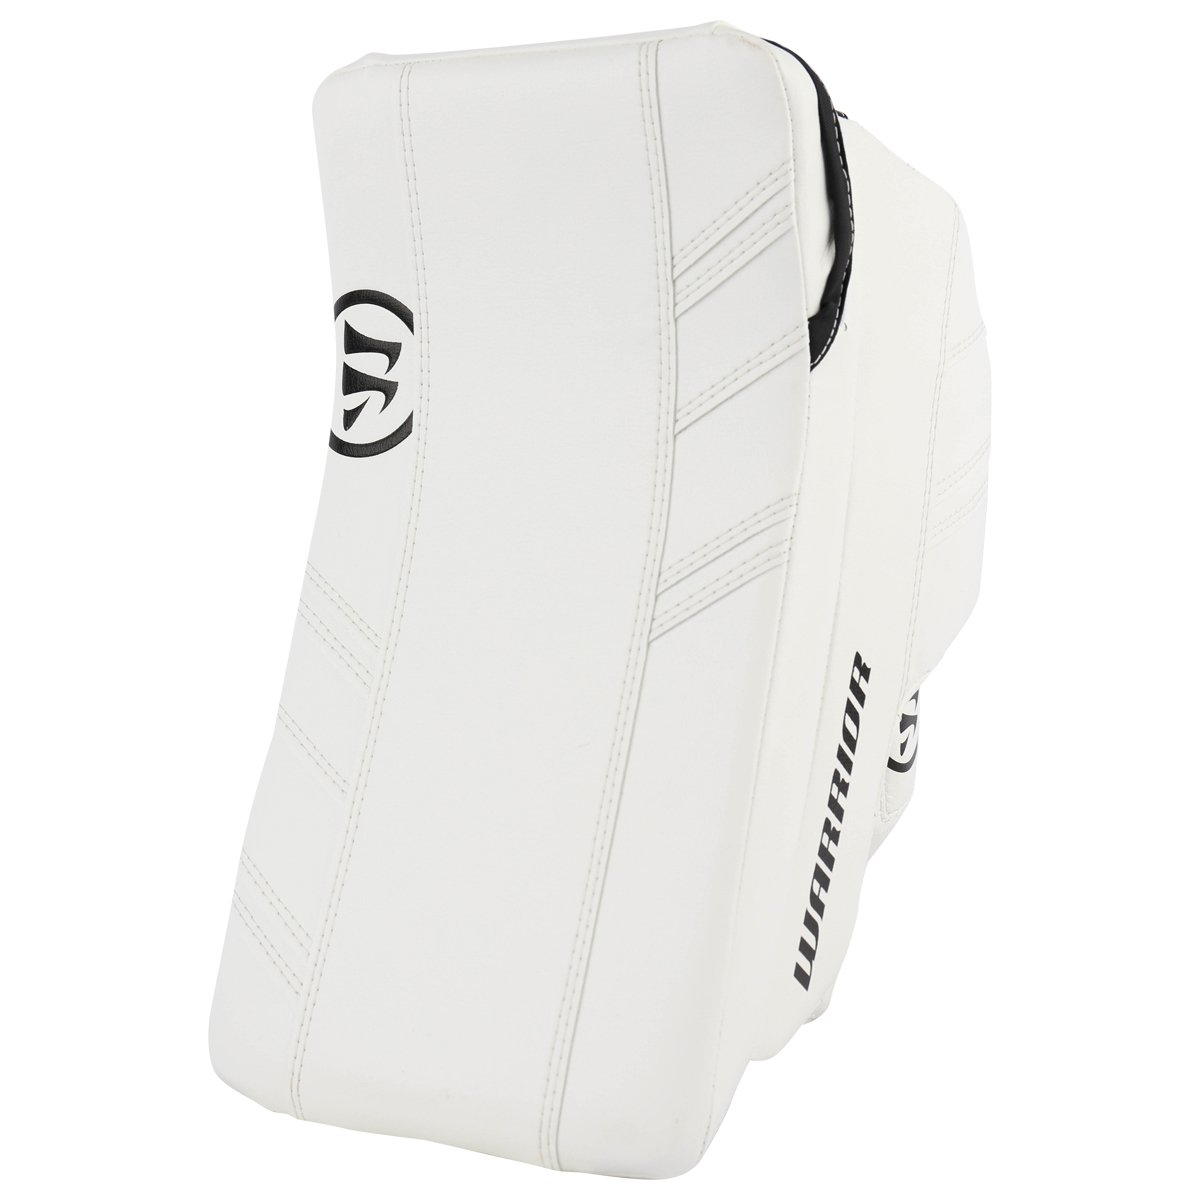 e46ff651333 In combination with the Warrior Brand and legendary goalie gear designer  Pete Smith  the Warrior Ritual G3 Pro pushes the envelope of goaltending  equipment ...